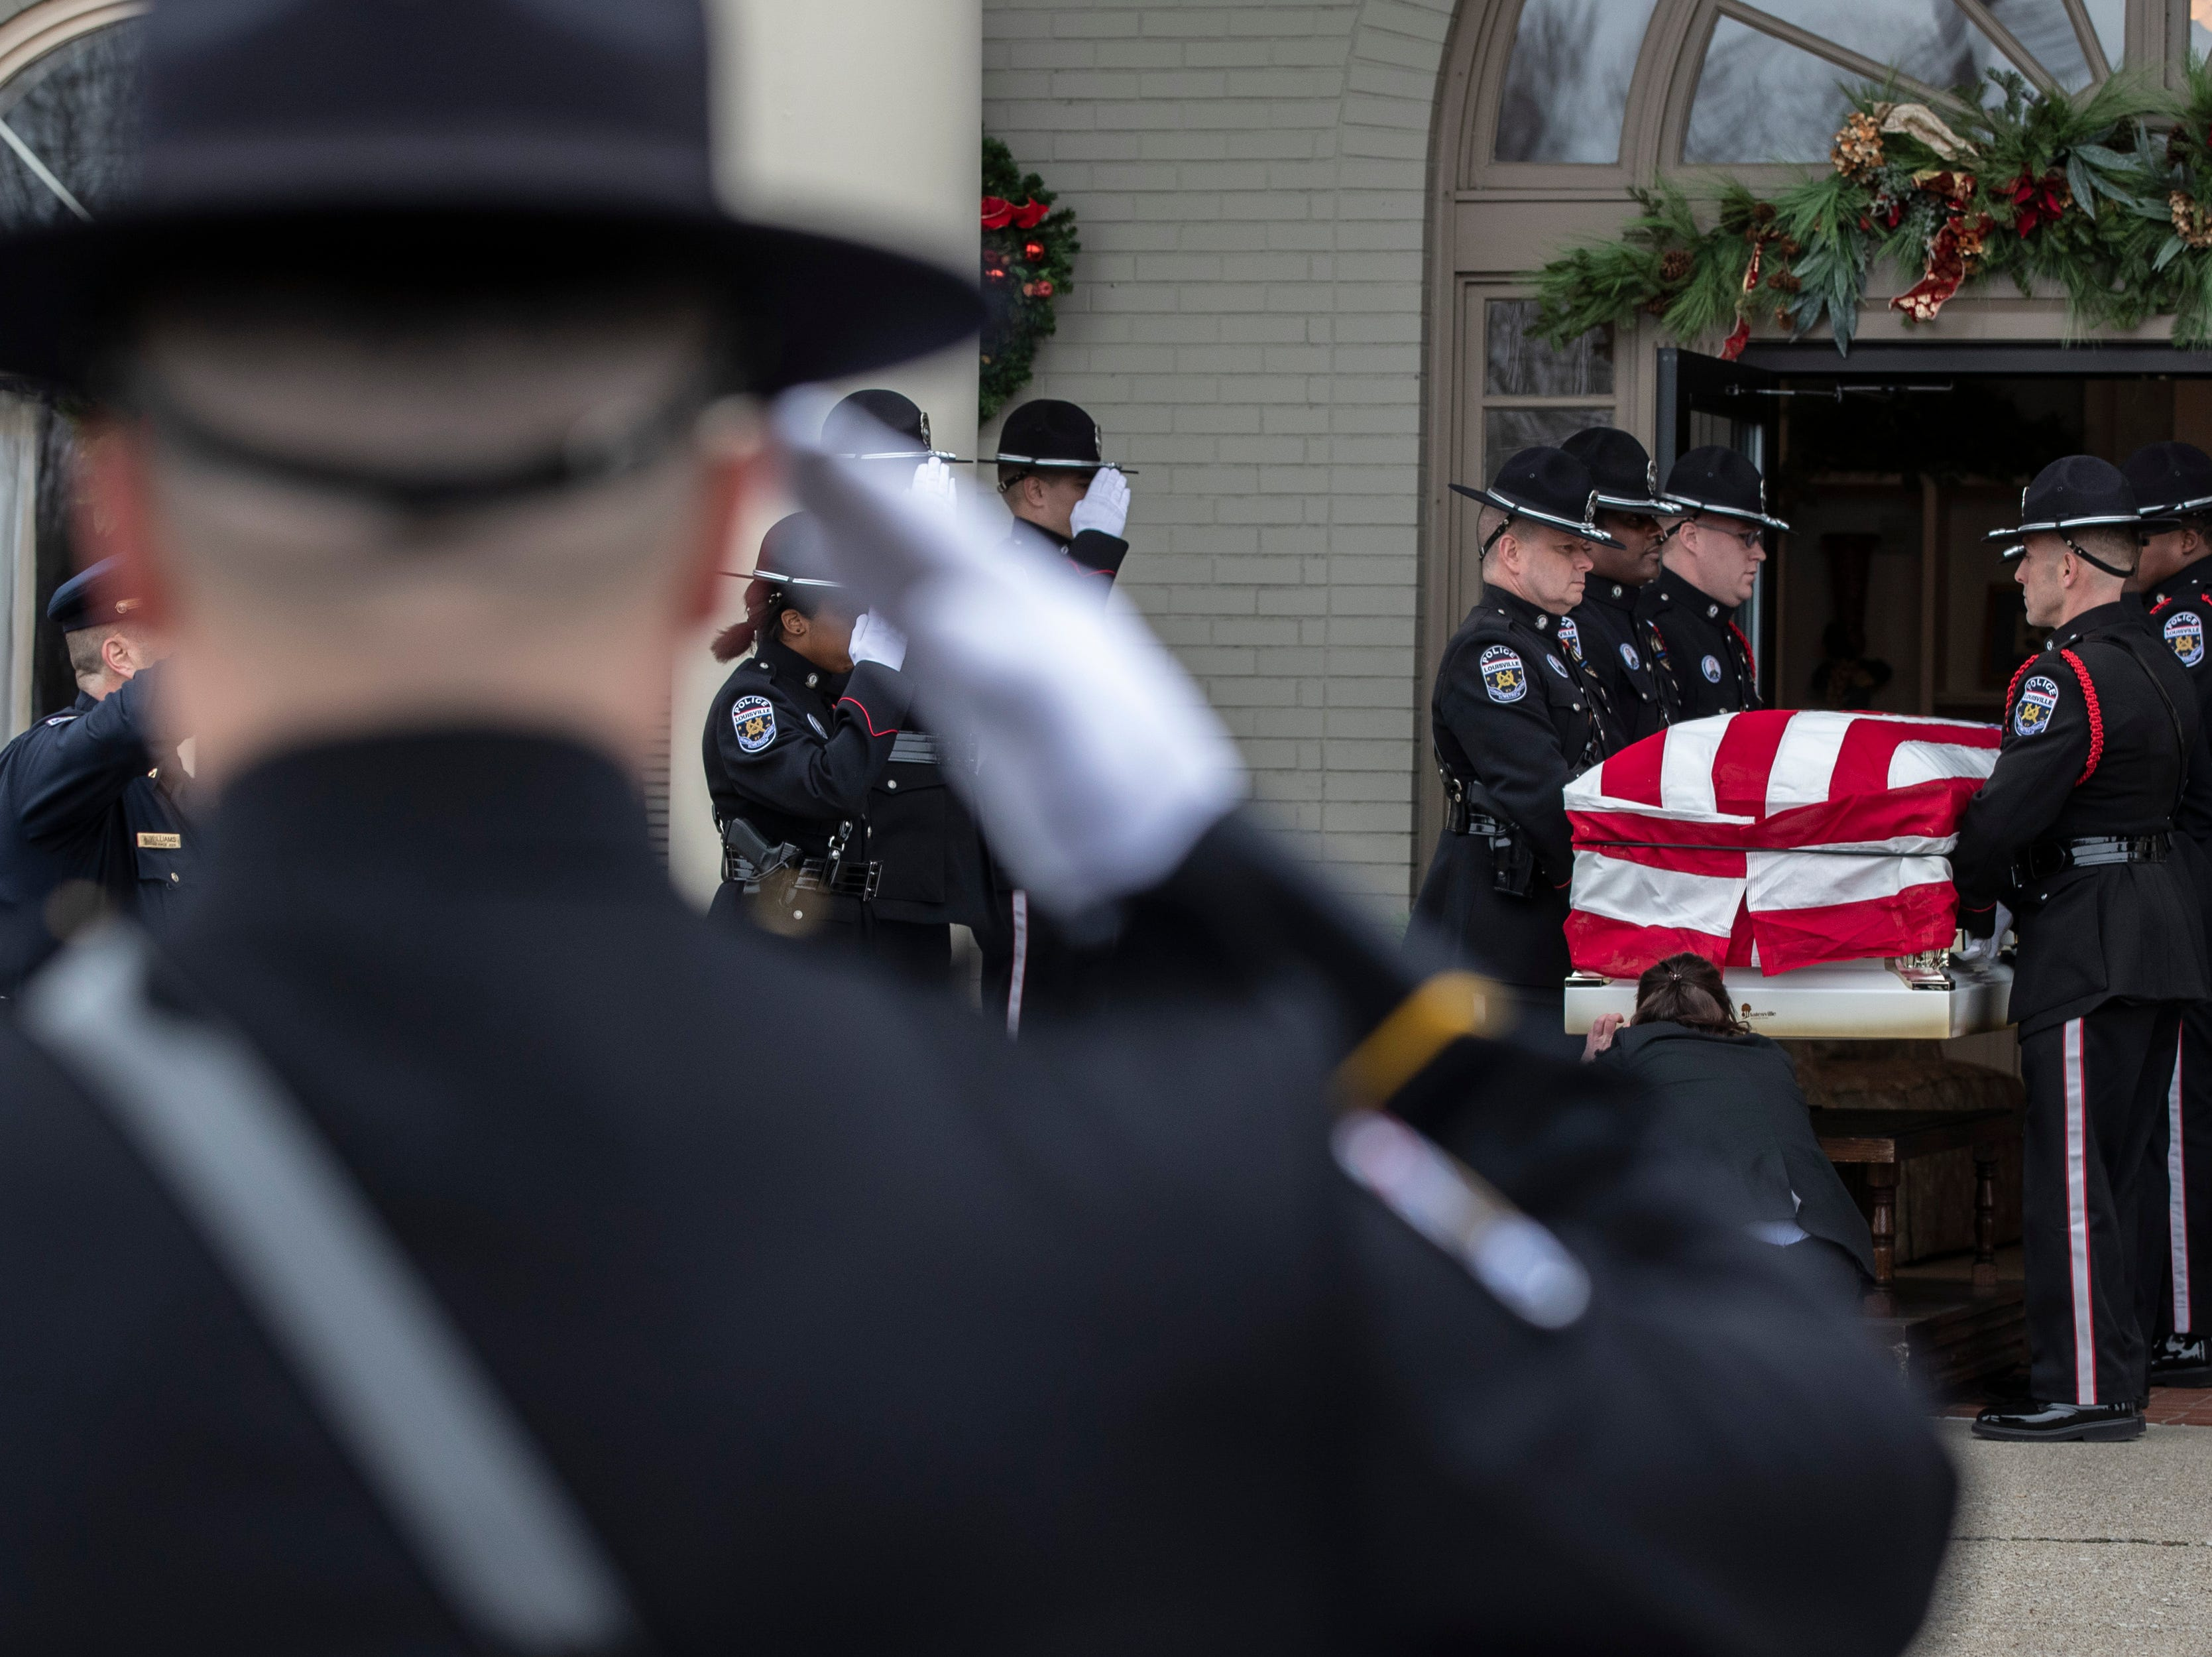 Police officers salute as the coffin of Deidre Mengedoht is carried into the Resthaven Funeral Home on Bardstown Road in Louisville, Ky. December 29, 2018